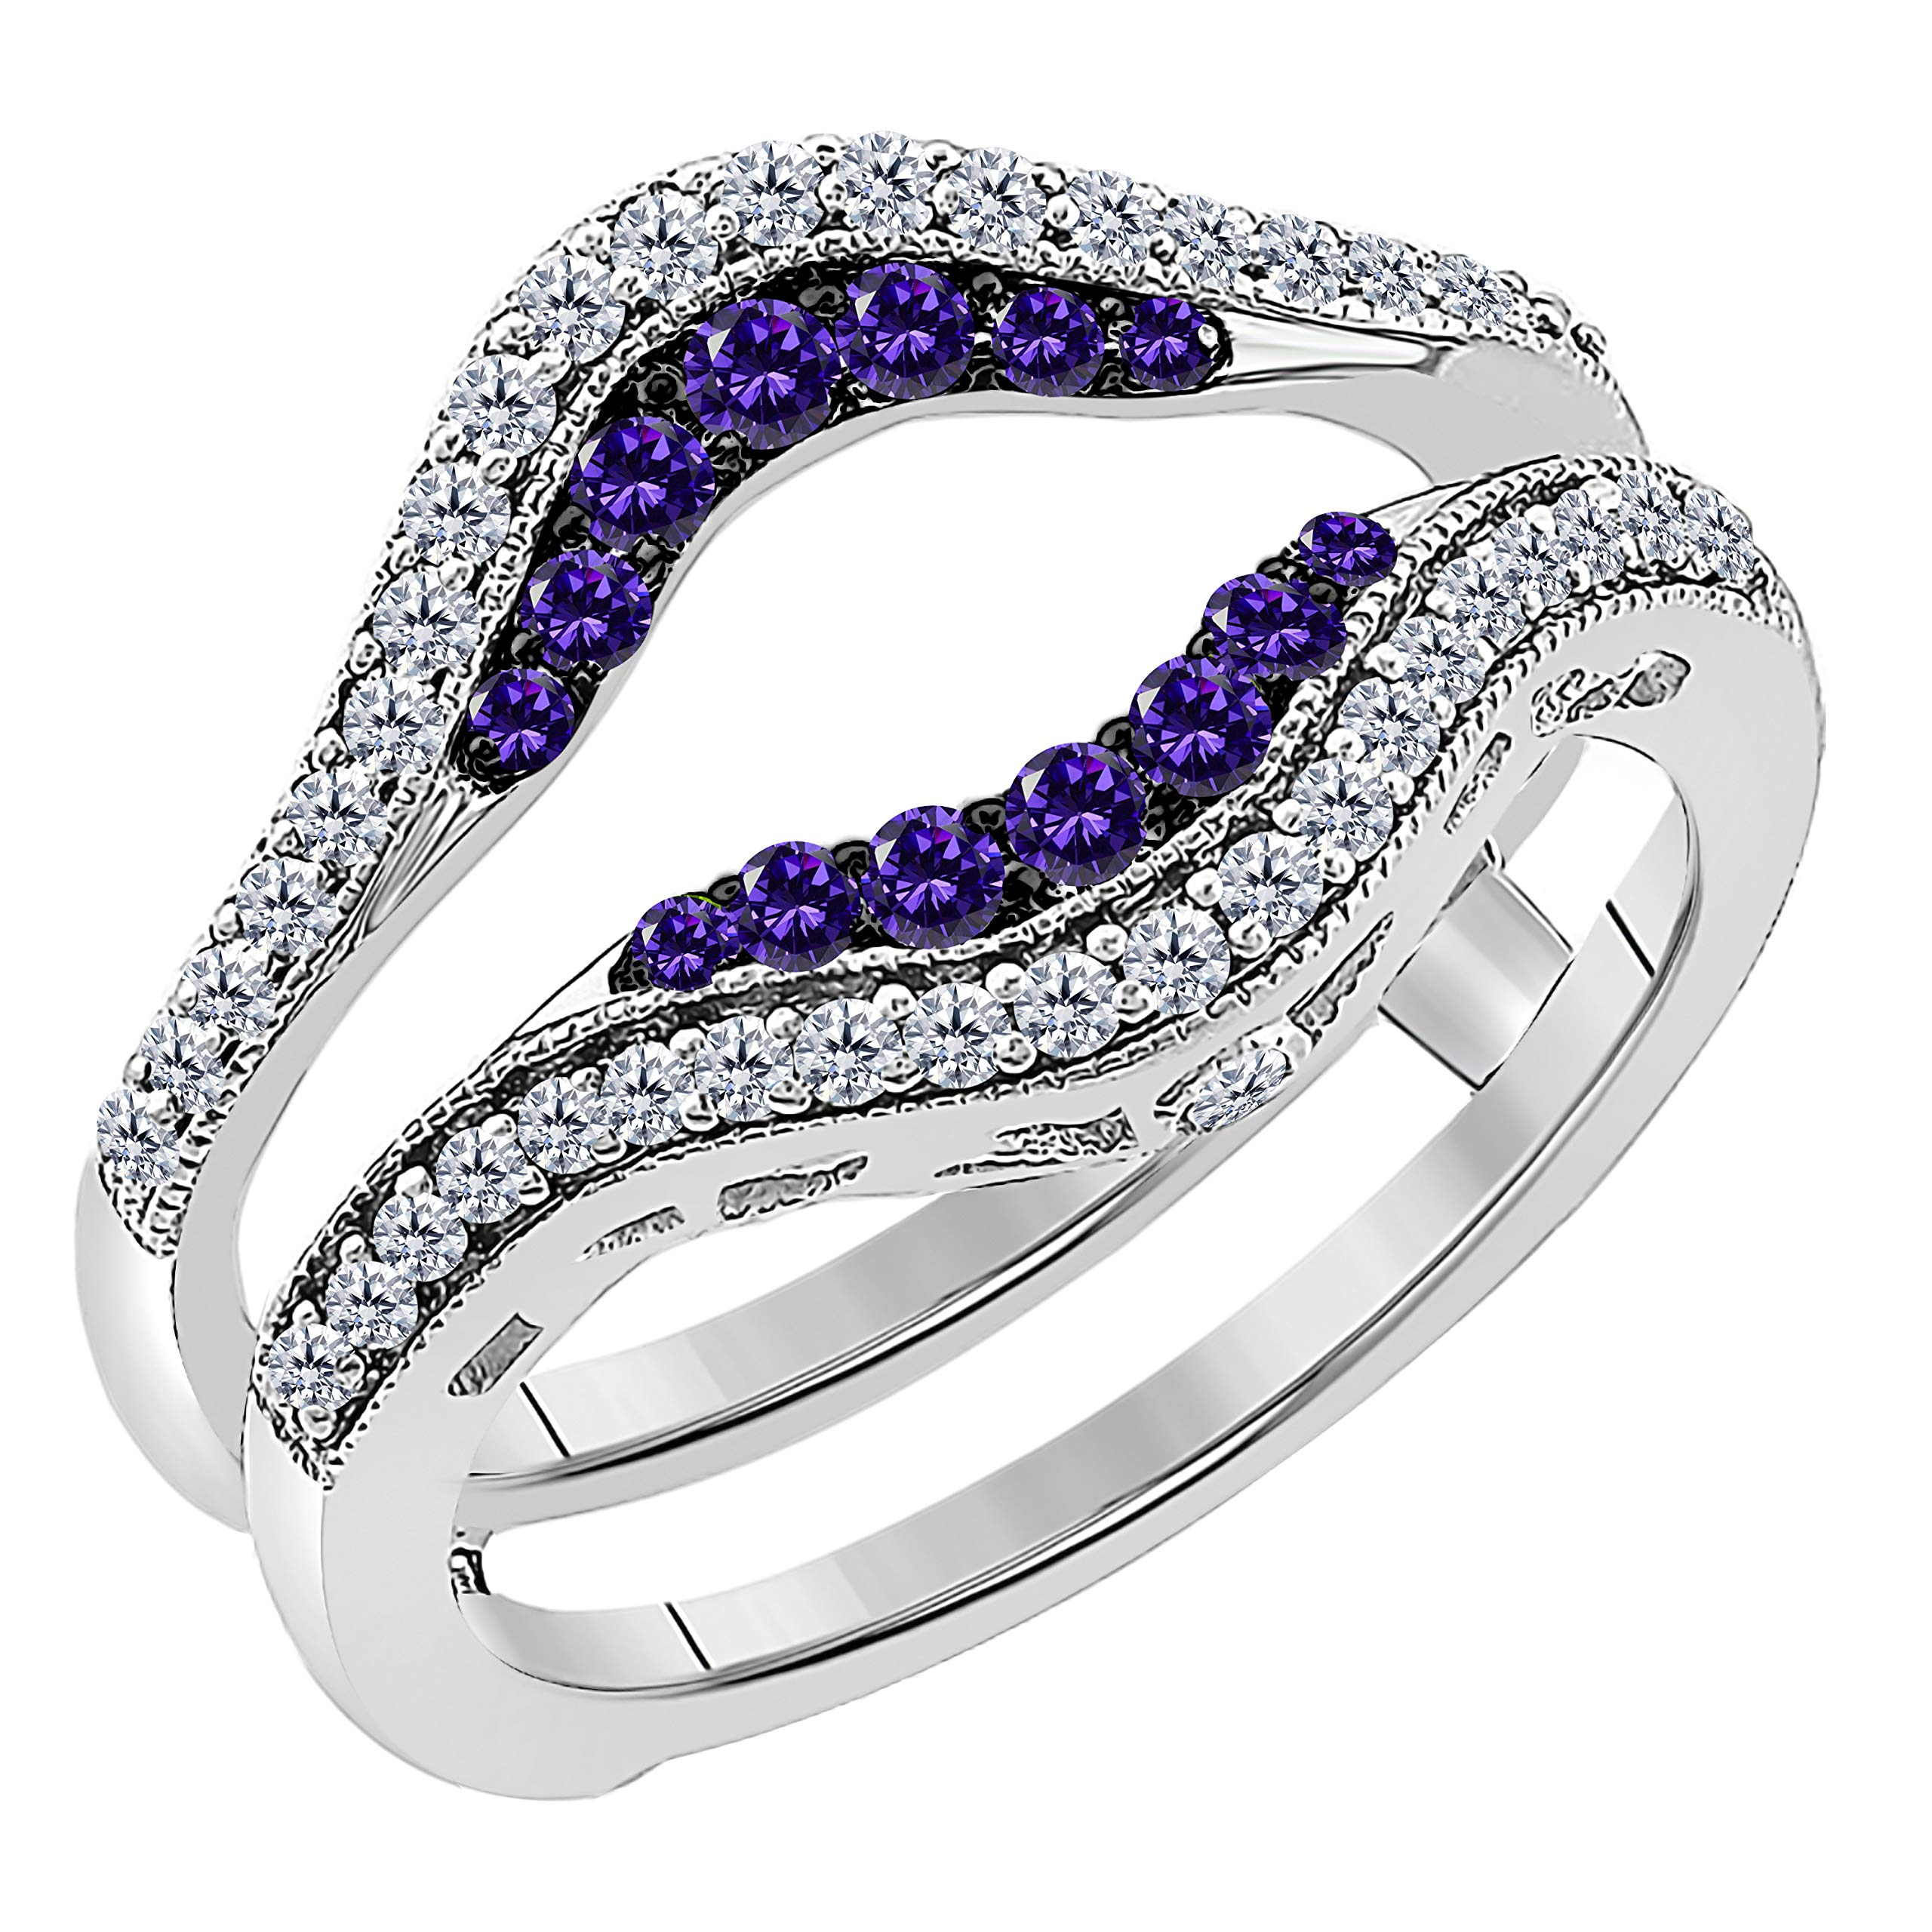 Women's 14k White Gold Plated Alloy Double Row Pave Set 0.50(ctw) CZ Amethyst & Cubic Zirconia Round Wedding Band Solitaire Enhancer Guard Wrap Ring